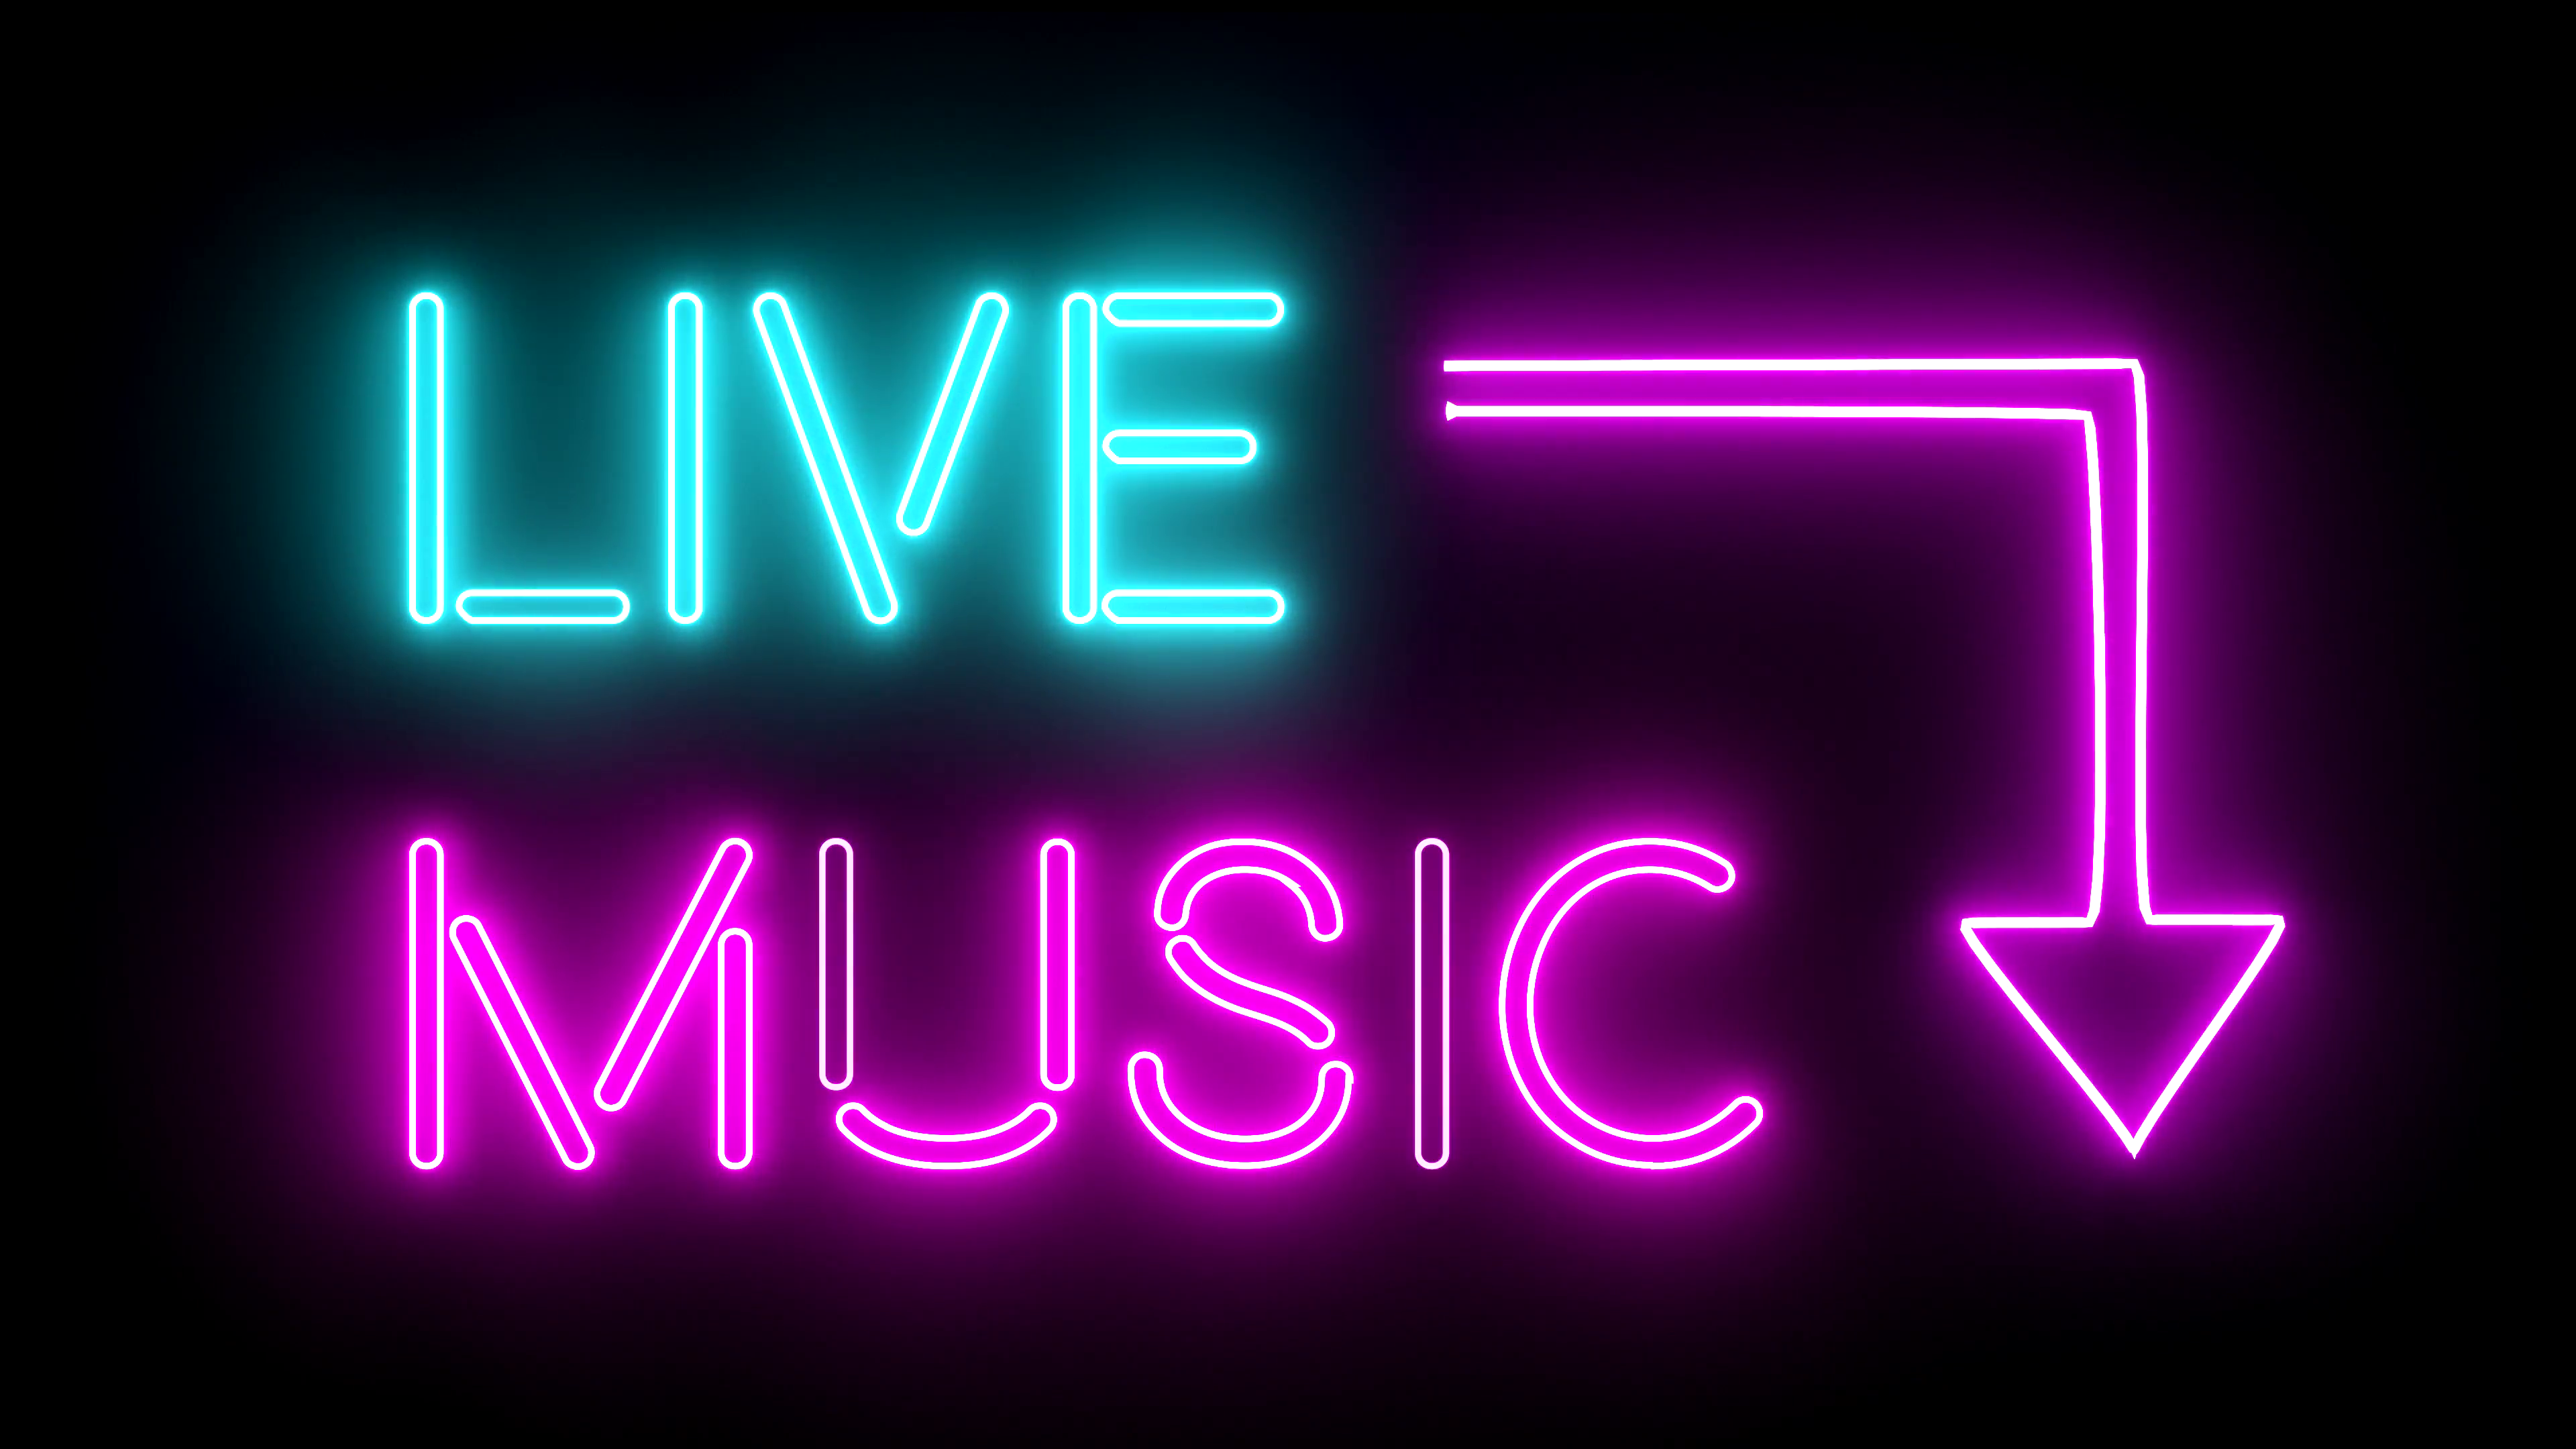 Neon Sign PNG - 78416